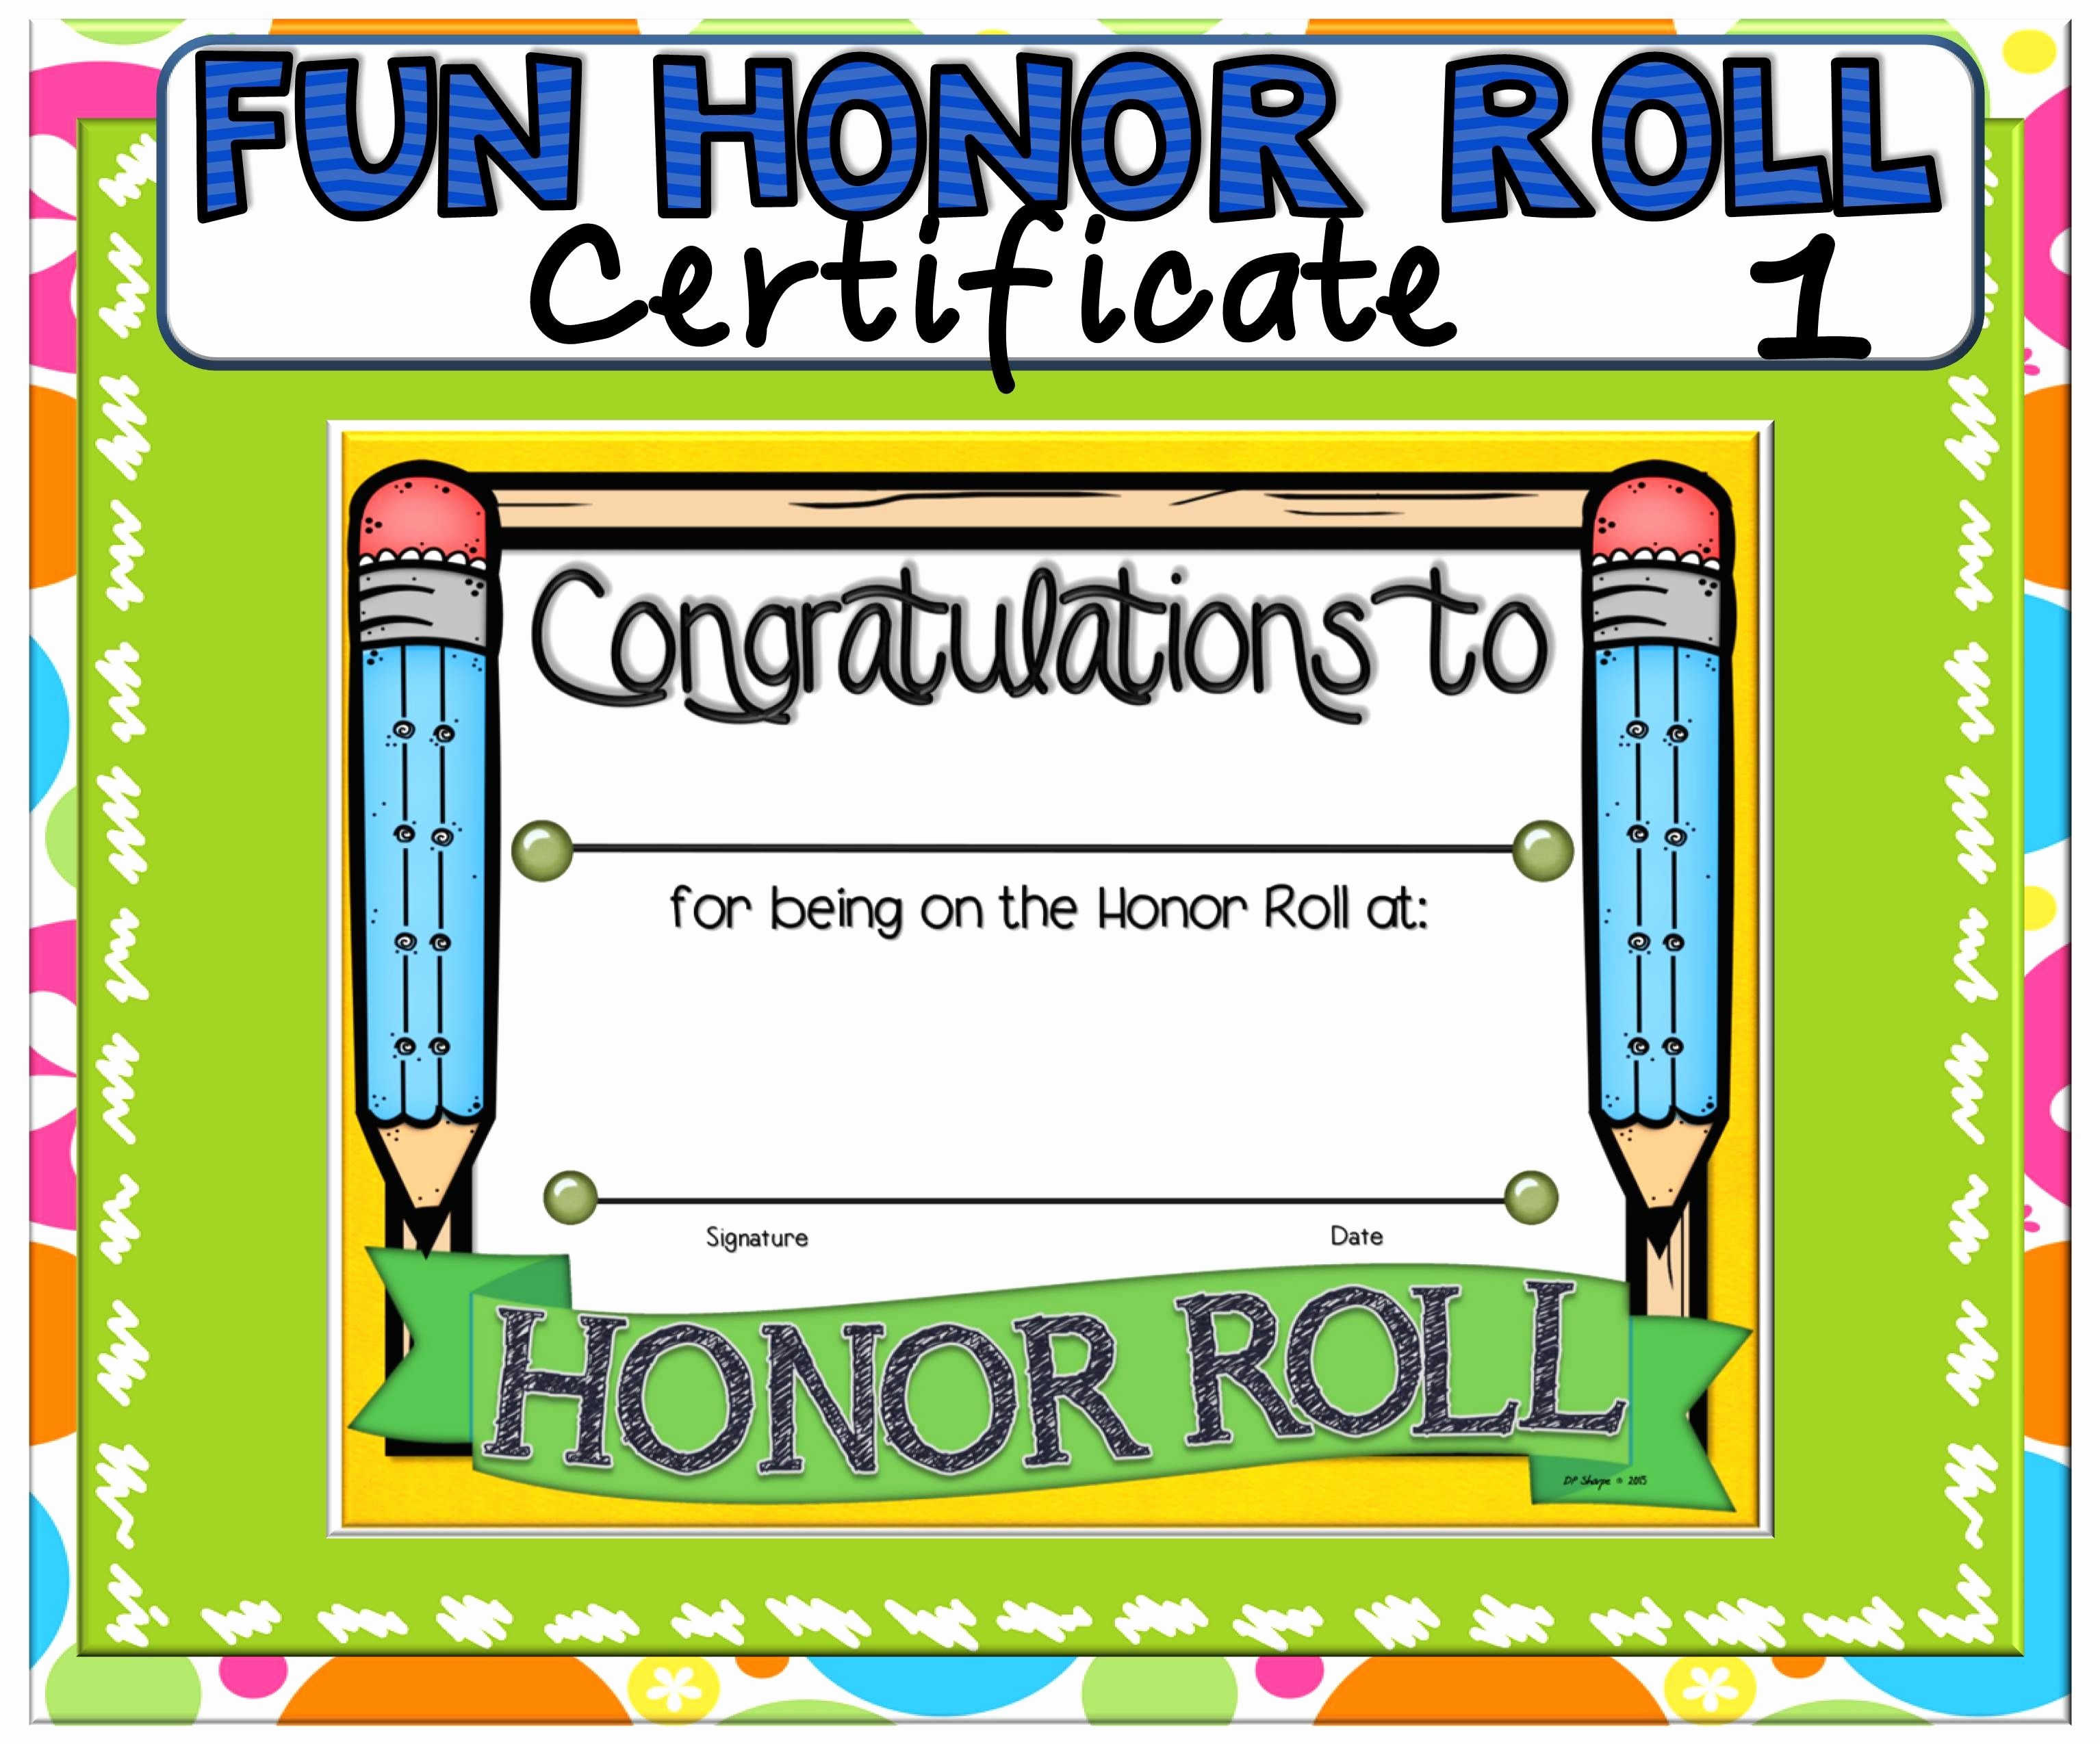 Free Printable Honor Roll Certificates Fresh Certificate Fun Honor Roll 1